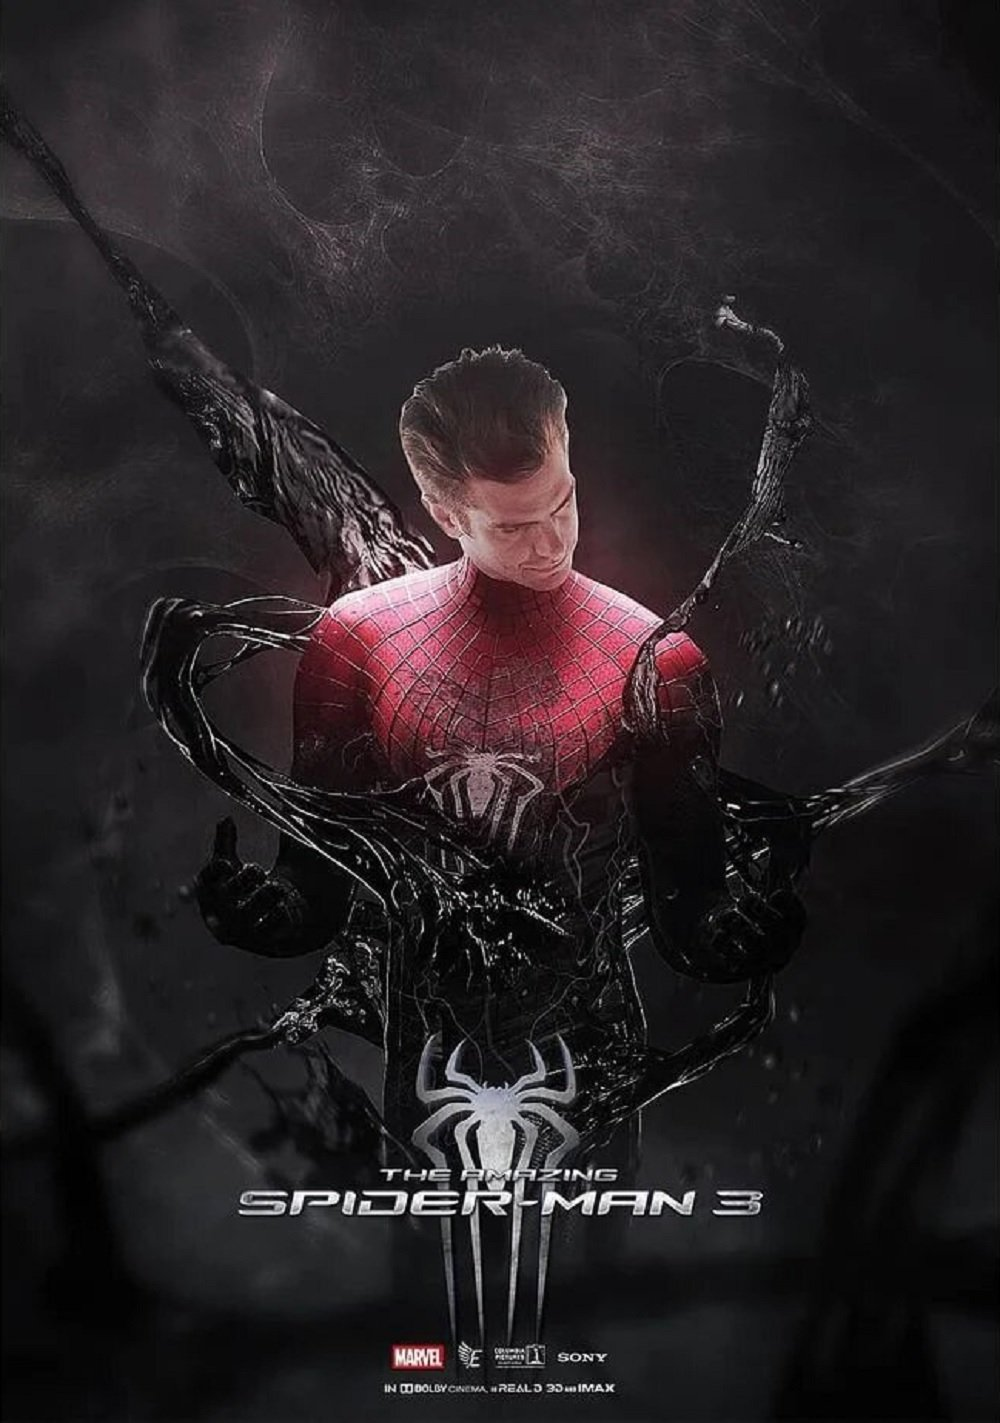 Venom Takes Over On Awesome Amazing Spider-Man 3 Fan Poster